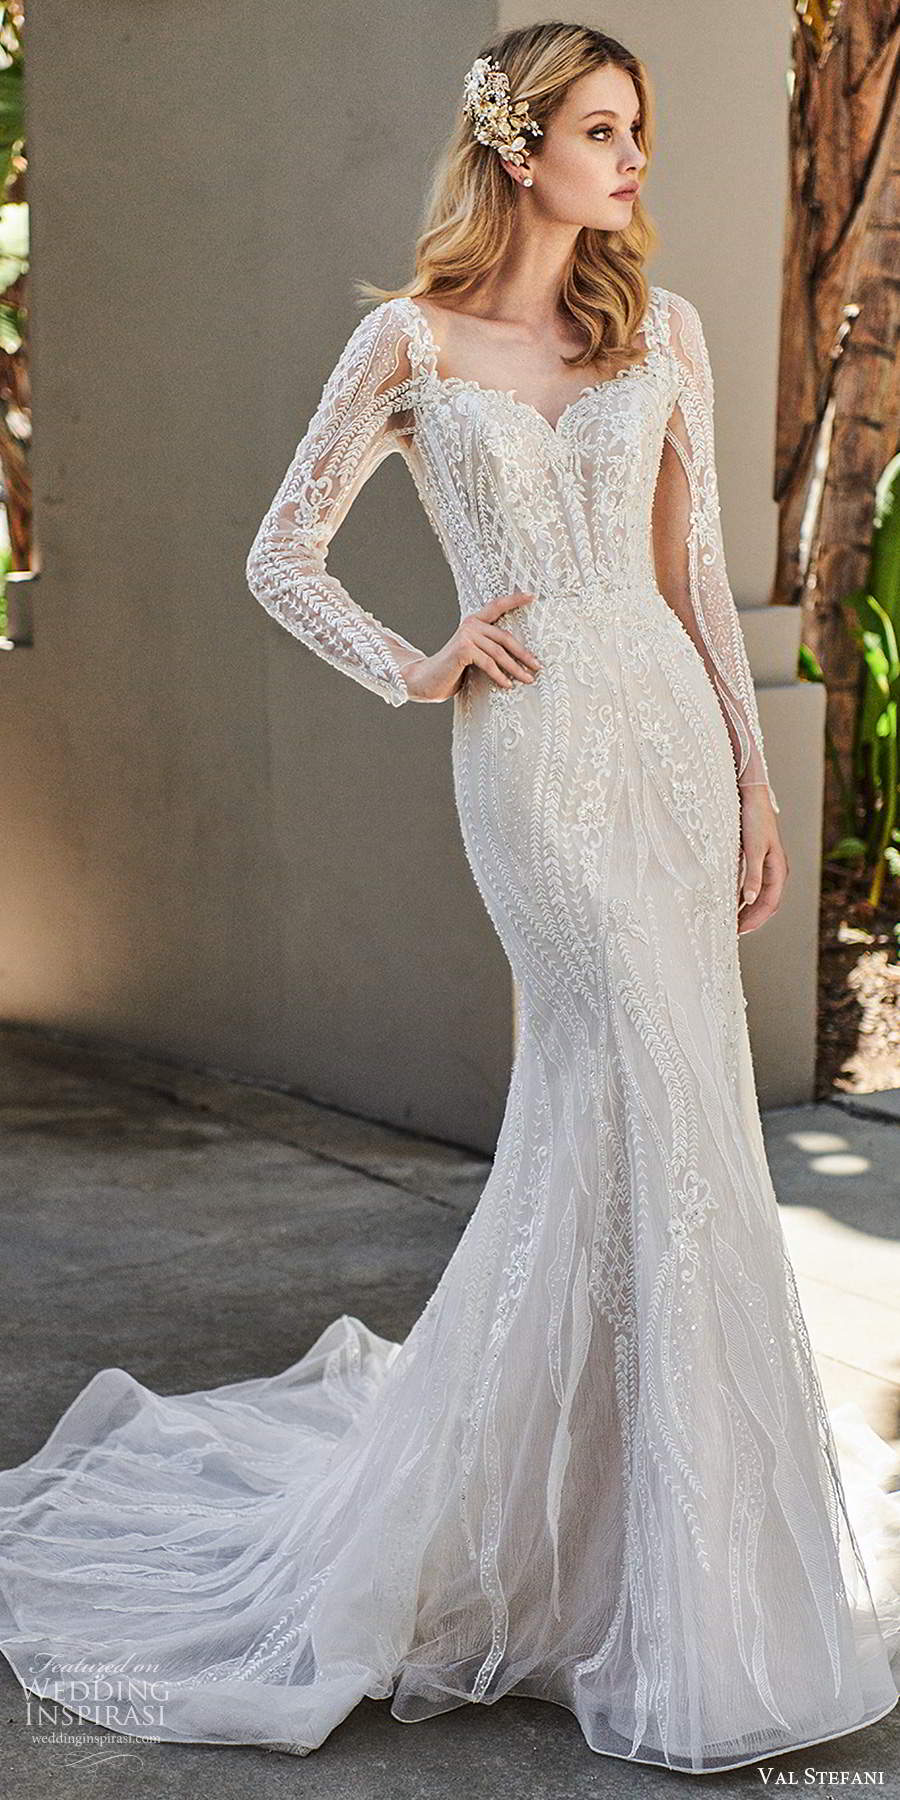 val stefani spring 2020 bridal illusion long sleeves sweetheart neckline fully embellished modified a line mermaid lace wedding dress chapel train (3) fv